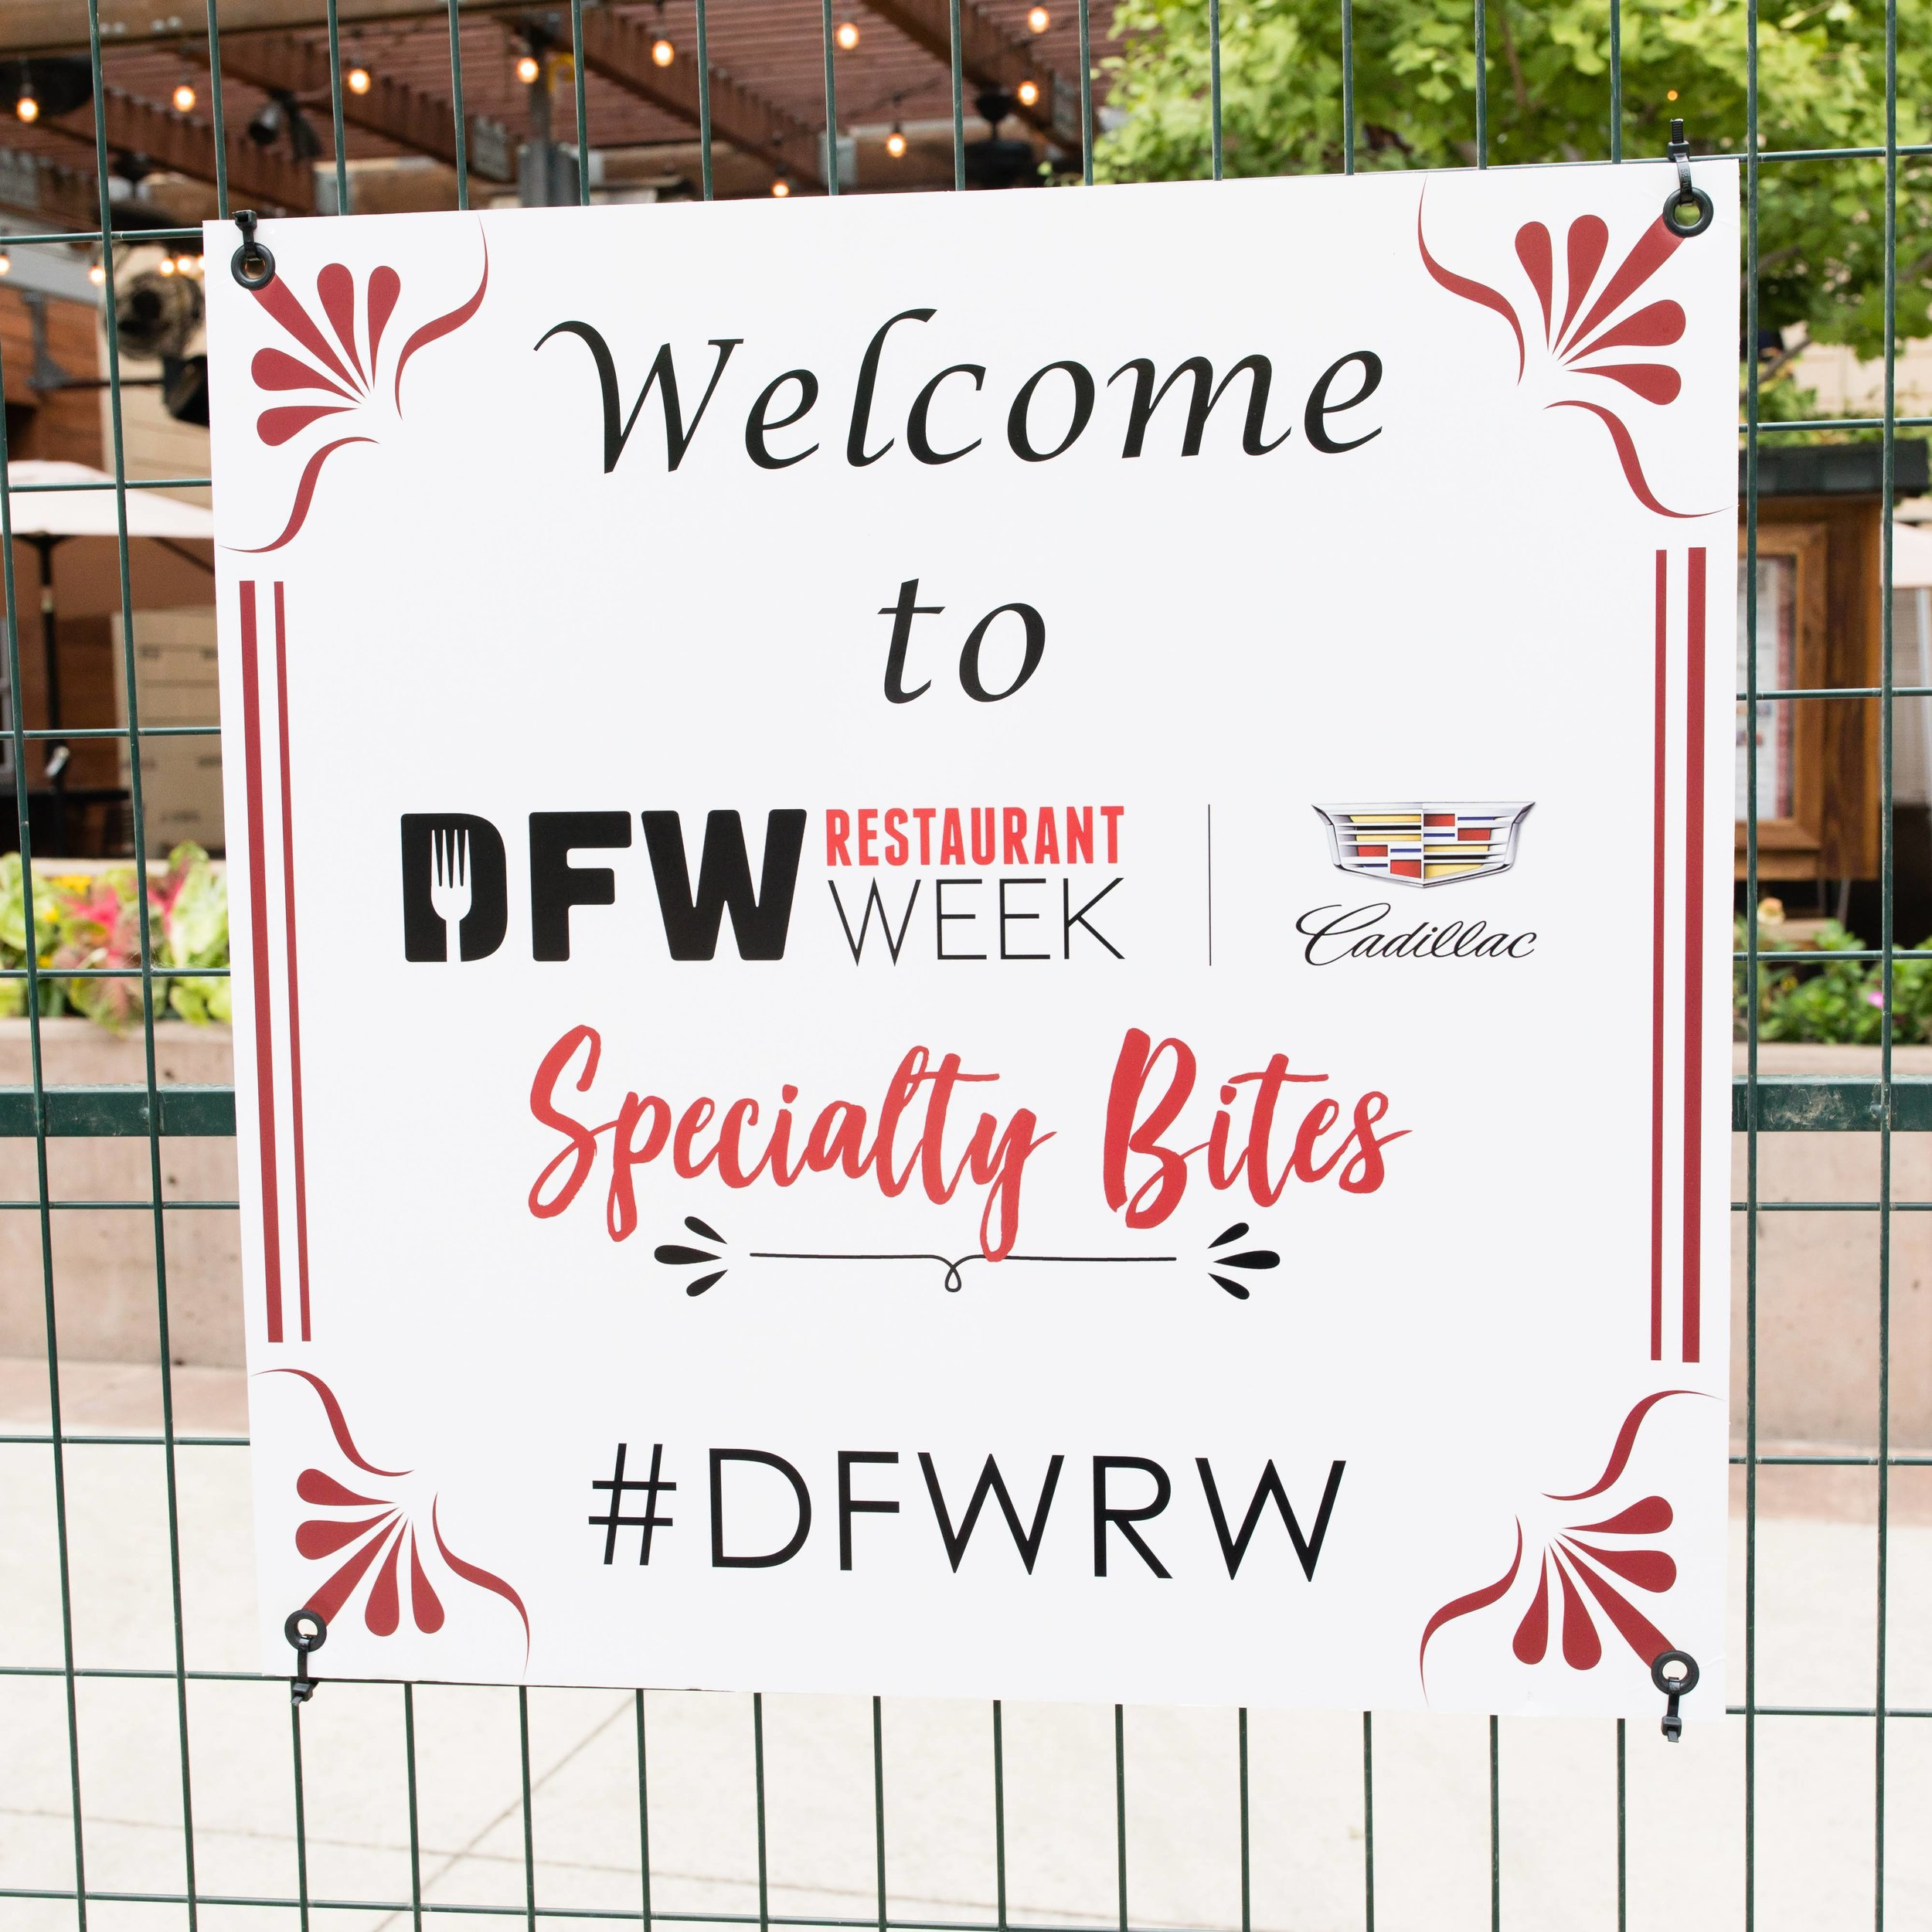 Make Your Life Sweeter Events - DFW Restaurant Week